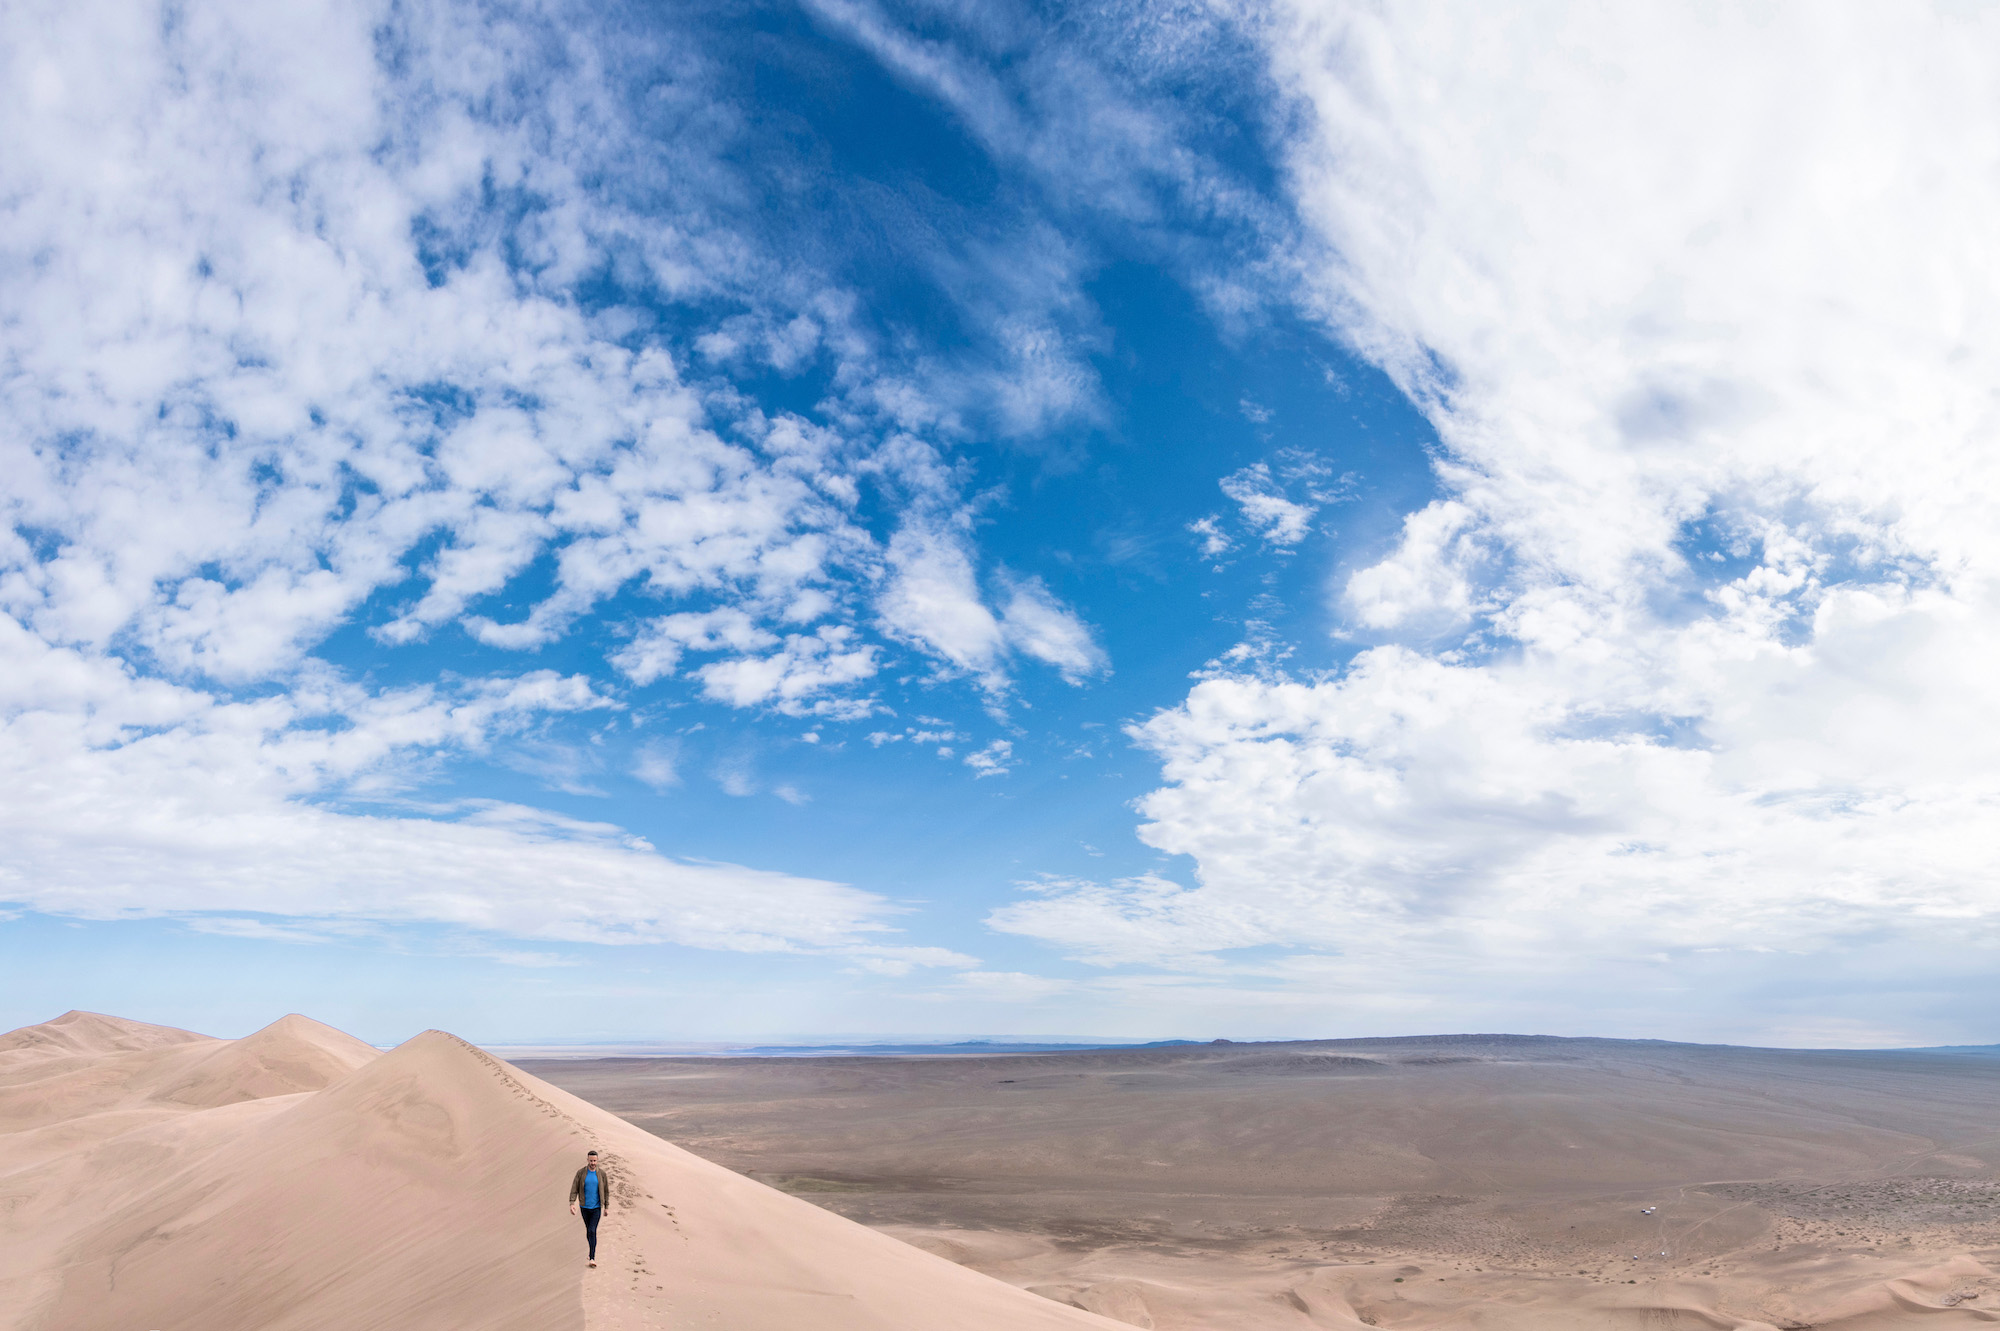 Sand Dunes in Mongolia